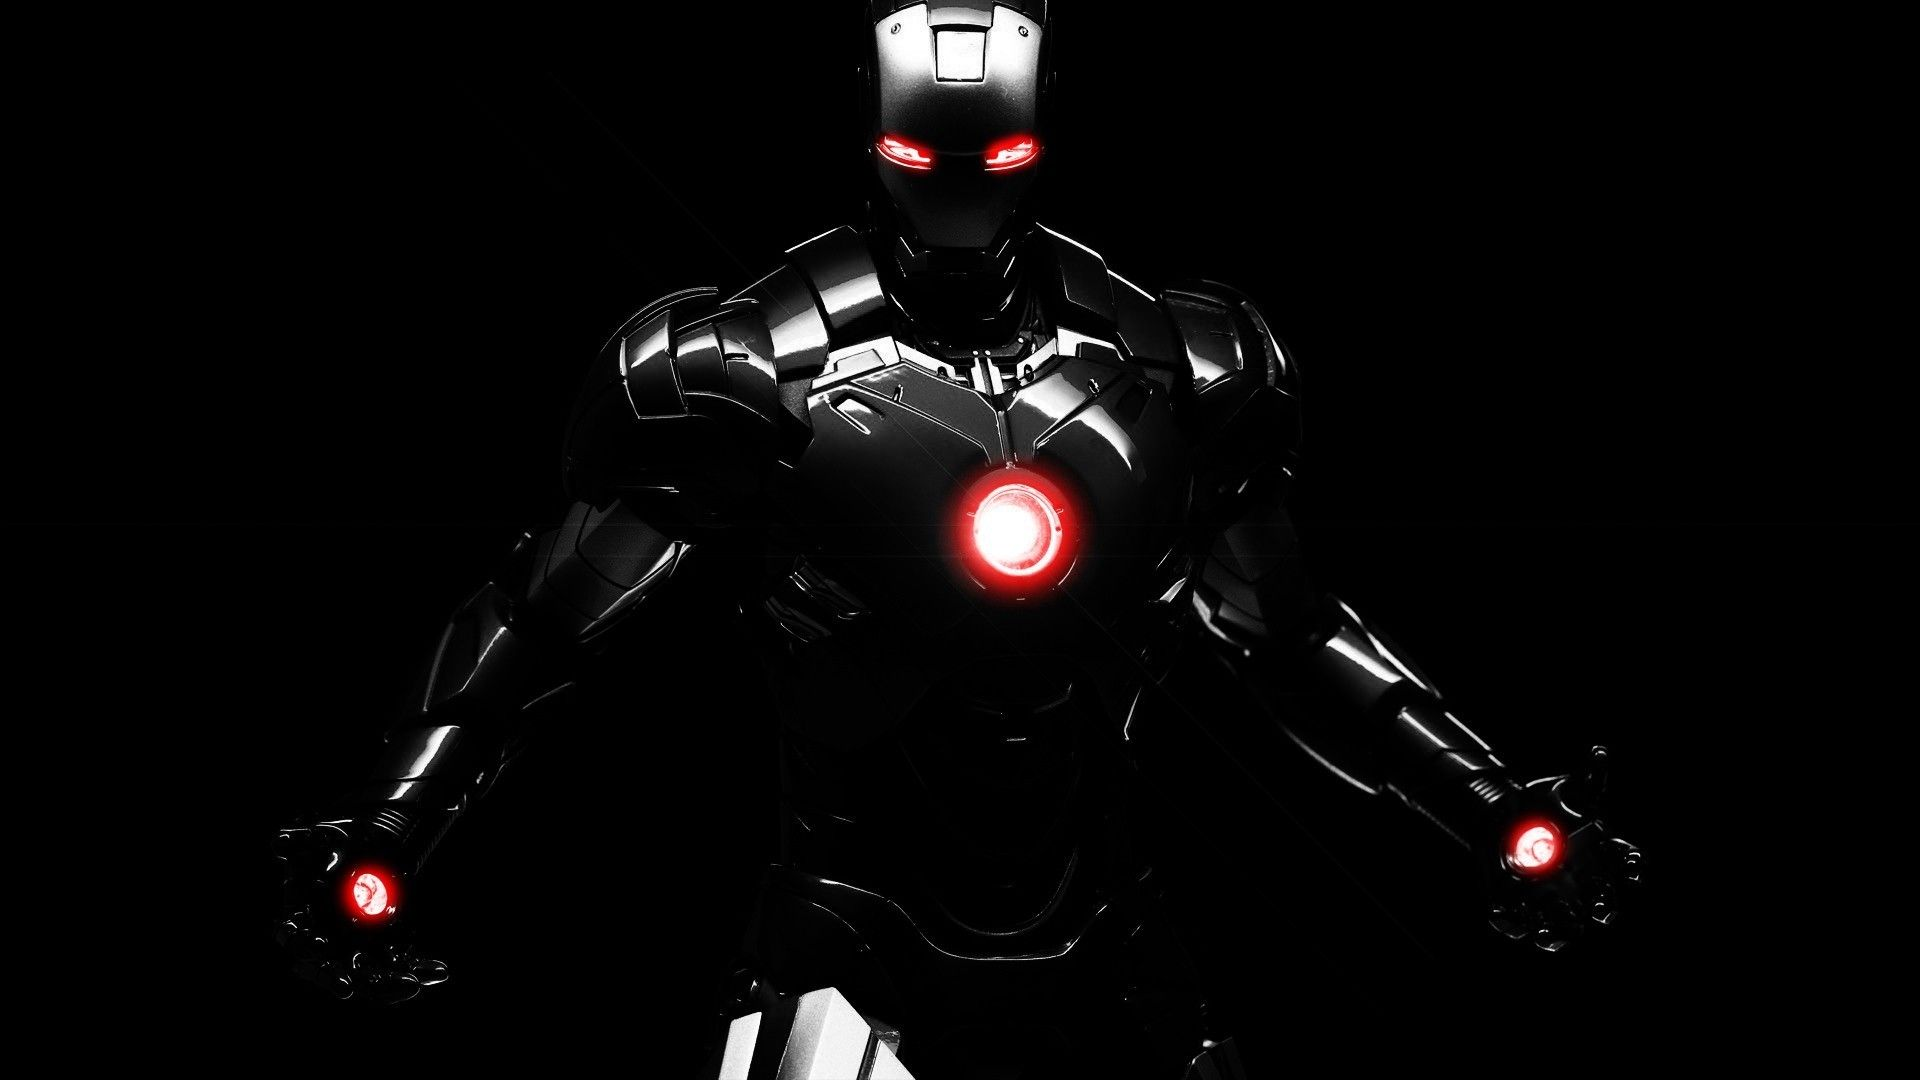 Black Screen Wallpaper For Mobile Phone Tablet Desktop Computer And Other Devices Hd And 4k Wallpapers In 2021 Iron Man Wallpaper Hd Iron Man Wallpaper Wallpaper